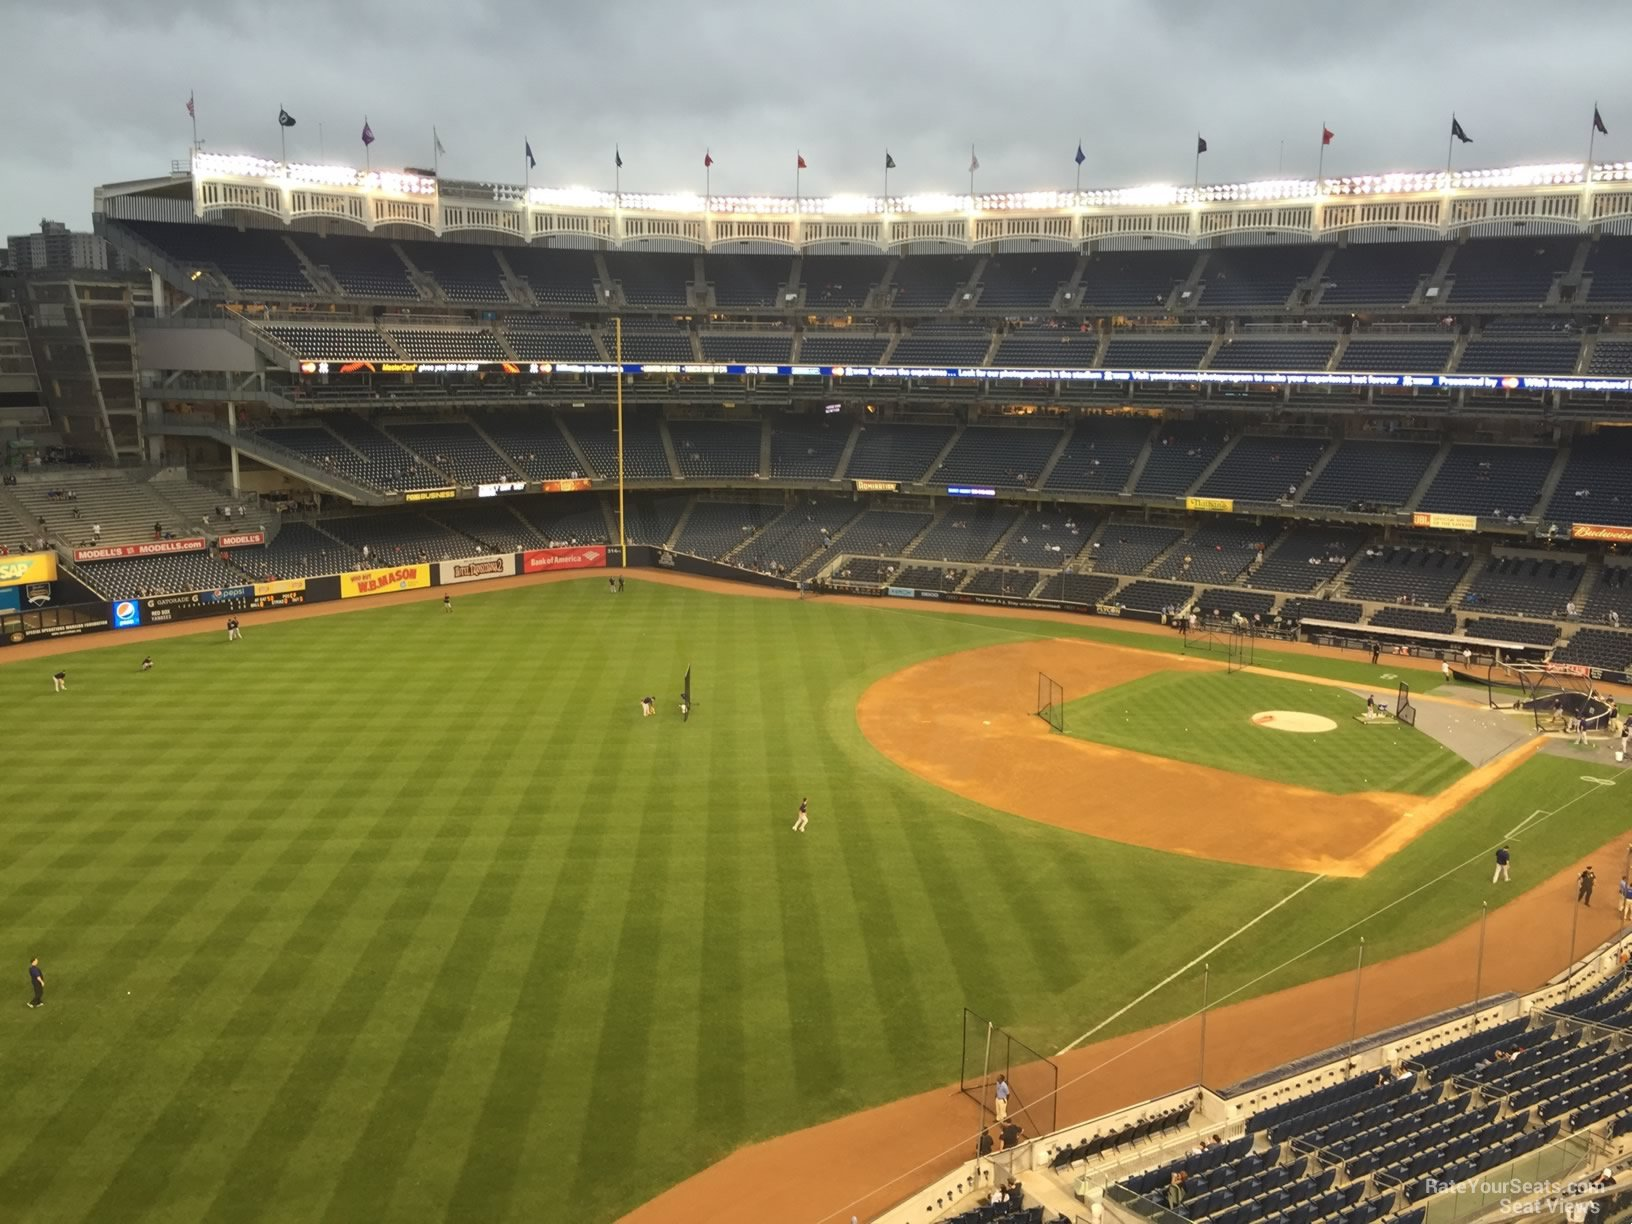 New York Yankees Seat View for Yankee Stadium Section 331, Row 6